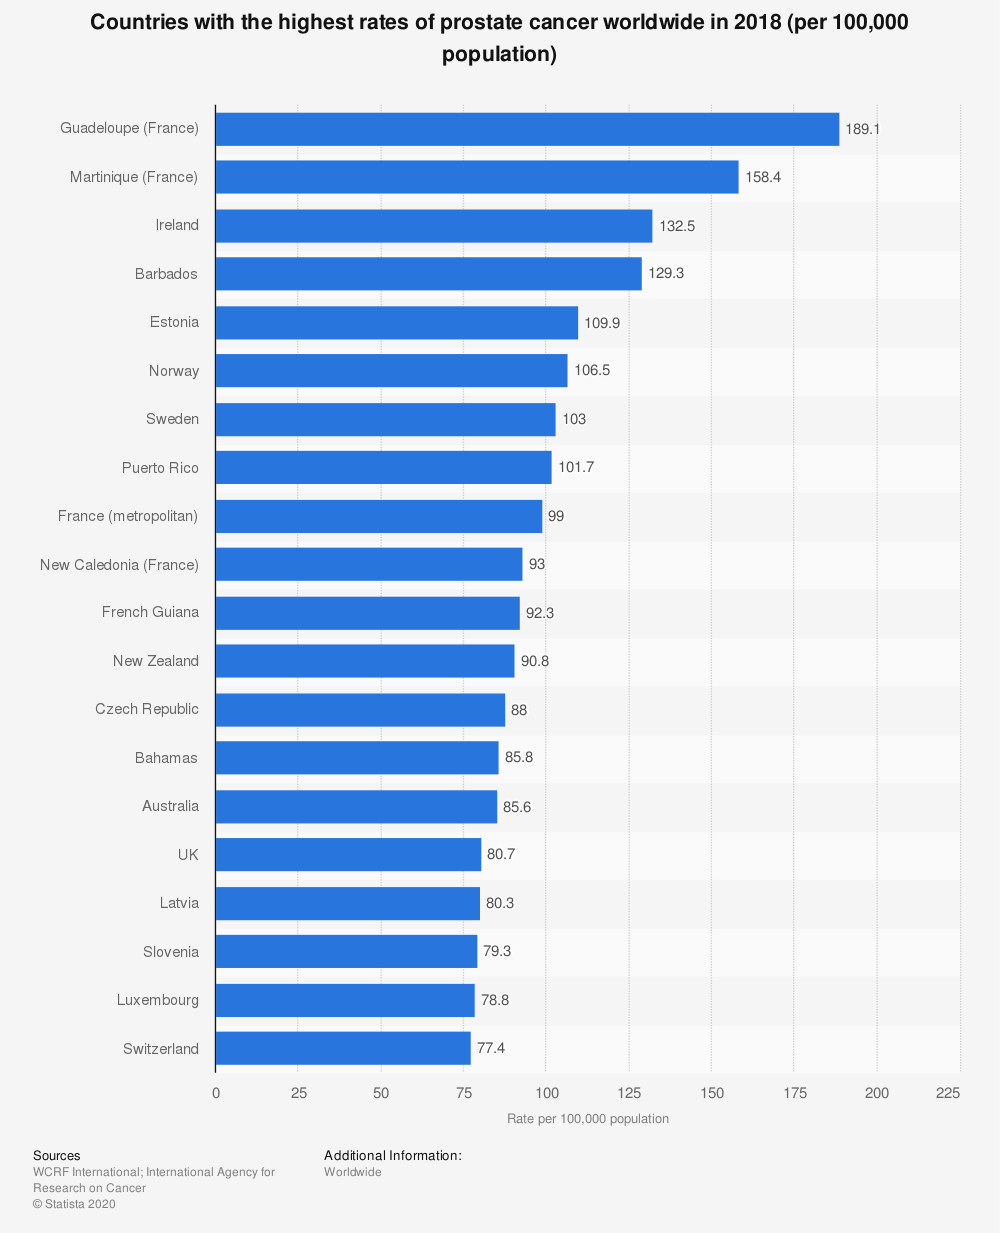 Statistic: Countries with the highest rates of prostate cancer worldwide in 2018 (per 100,000 population) | Statista